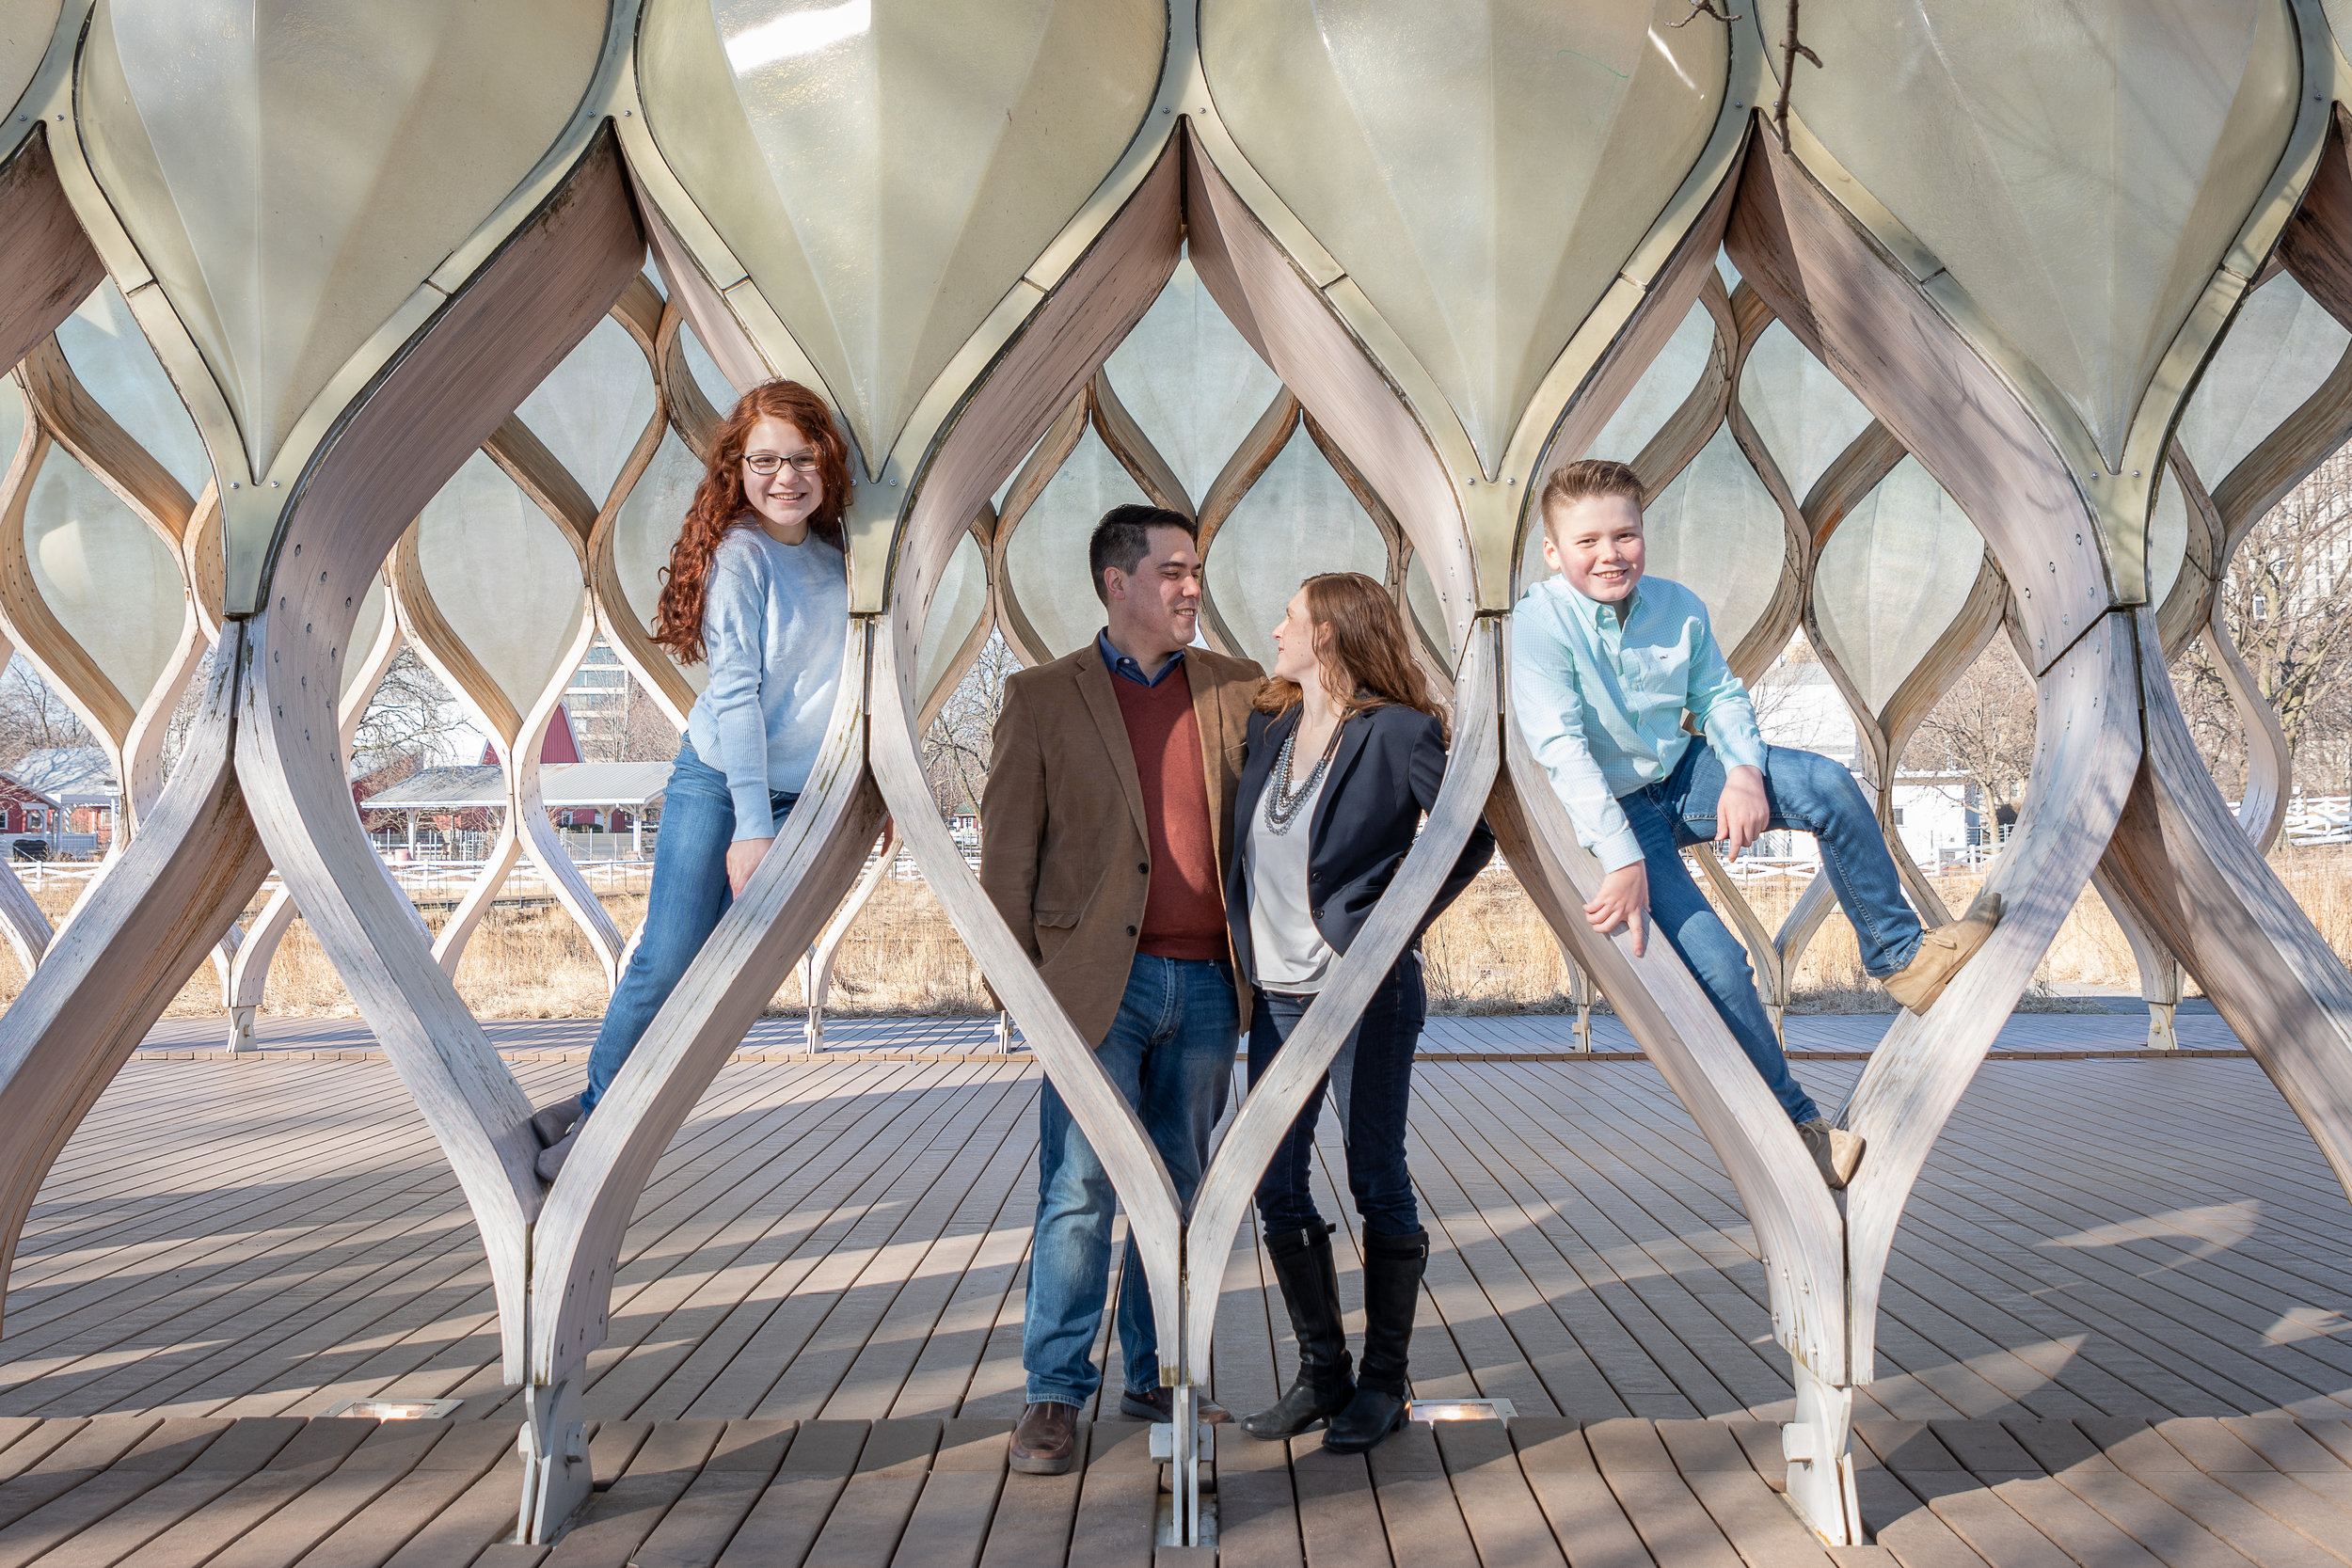 a man, woman, 12 year old girl, and 10 year old boy pose for family pictures at The Honeycomb pavilion on Lincoln Park's Nature Boardwalk